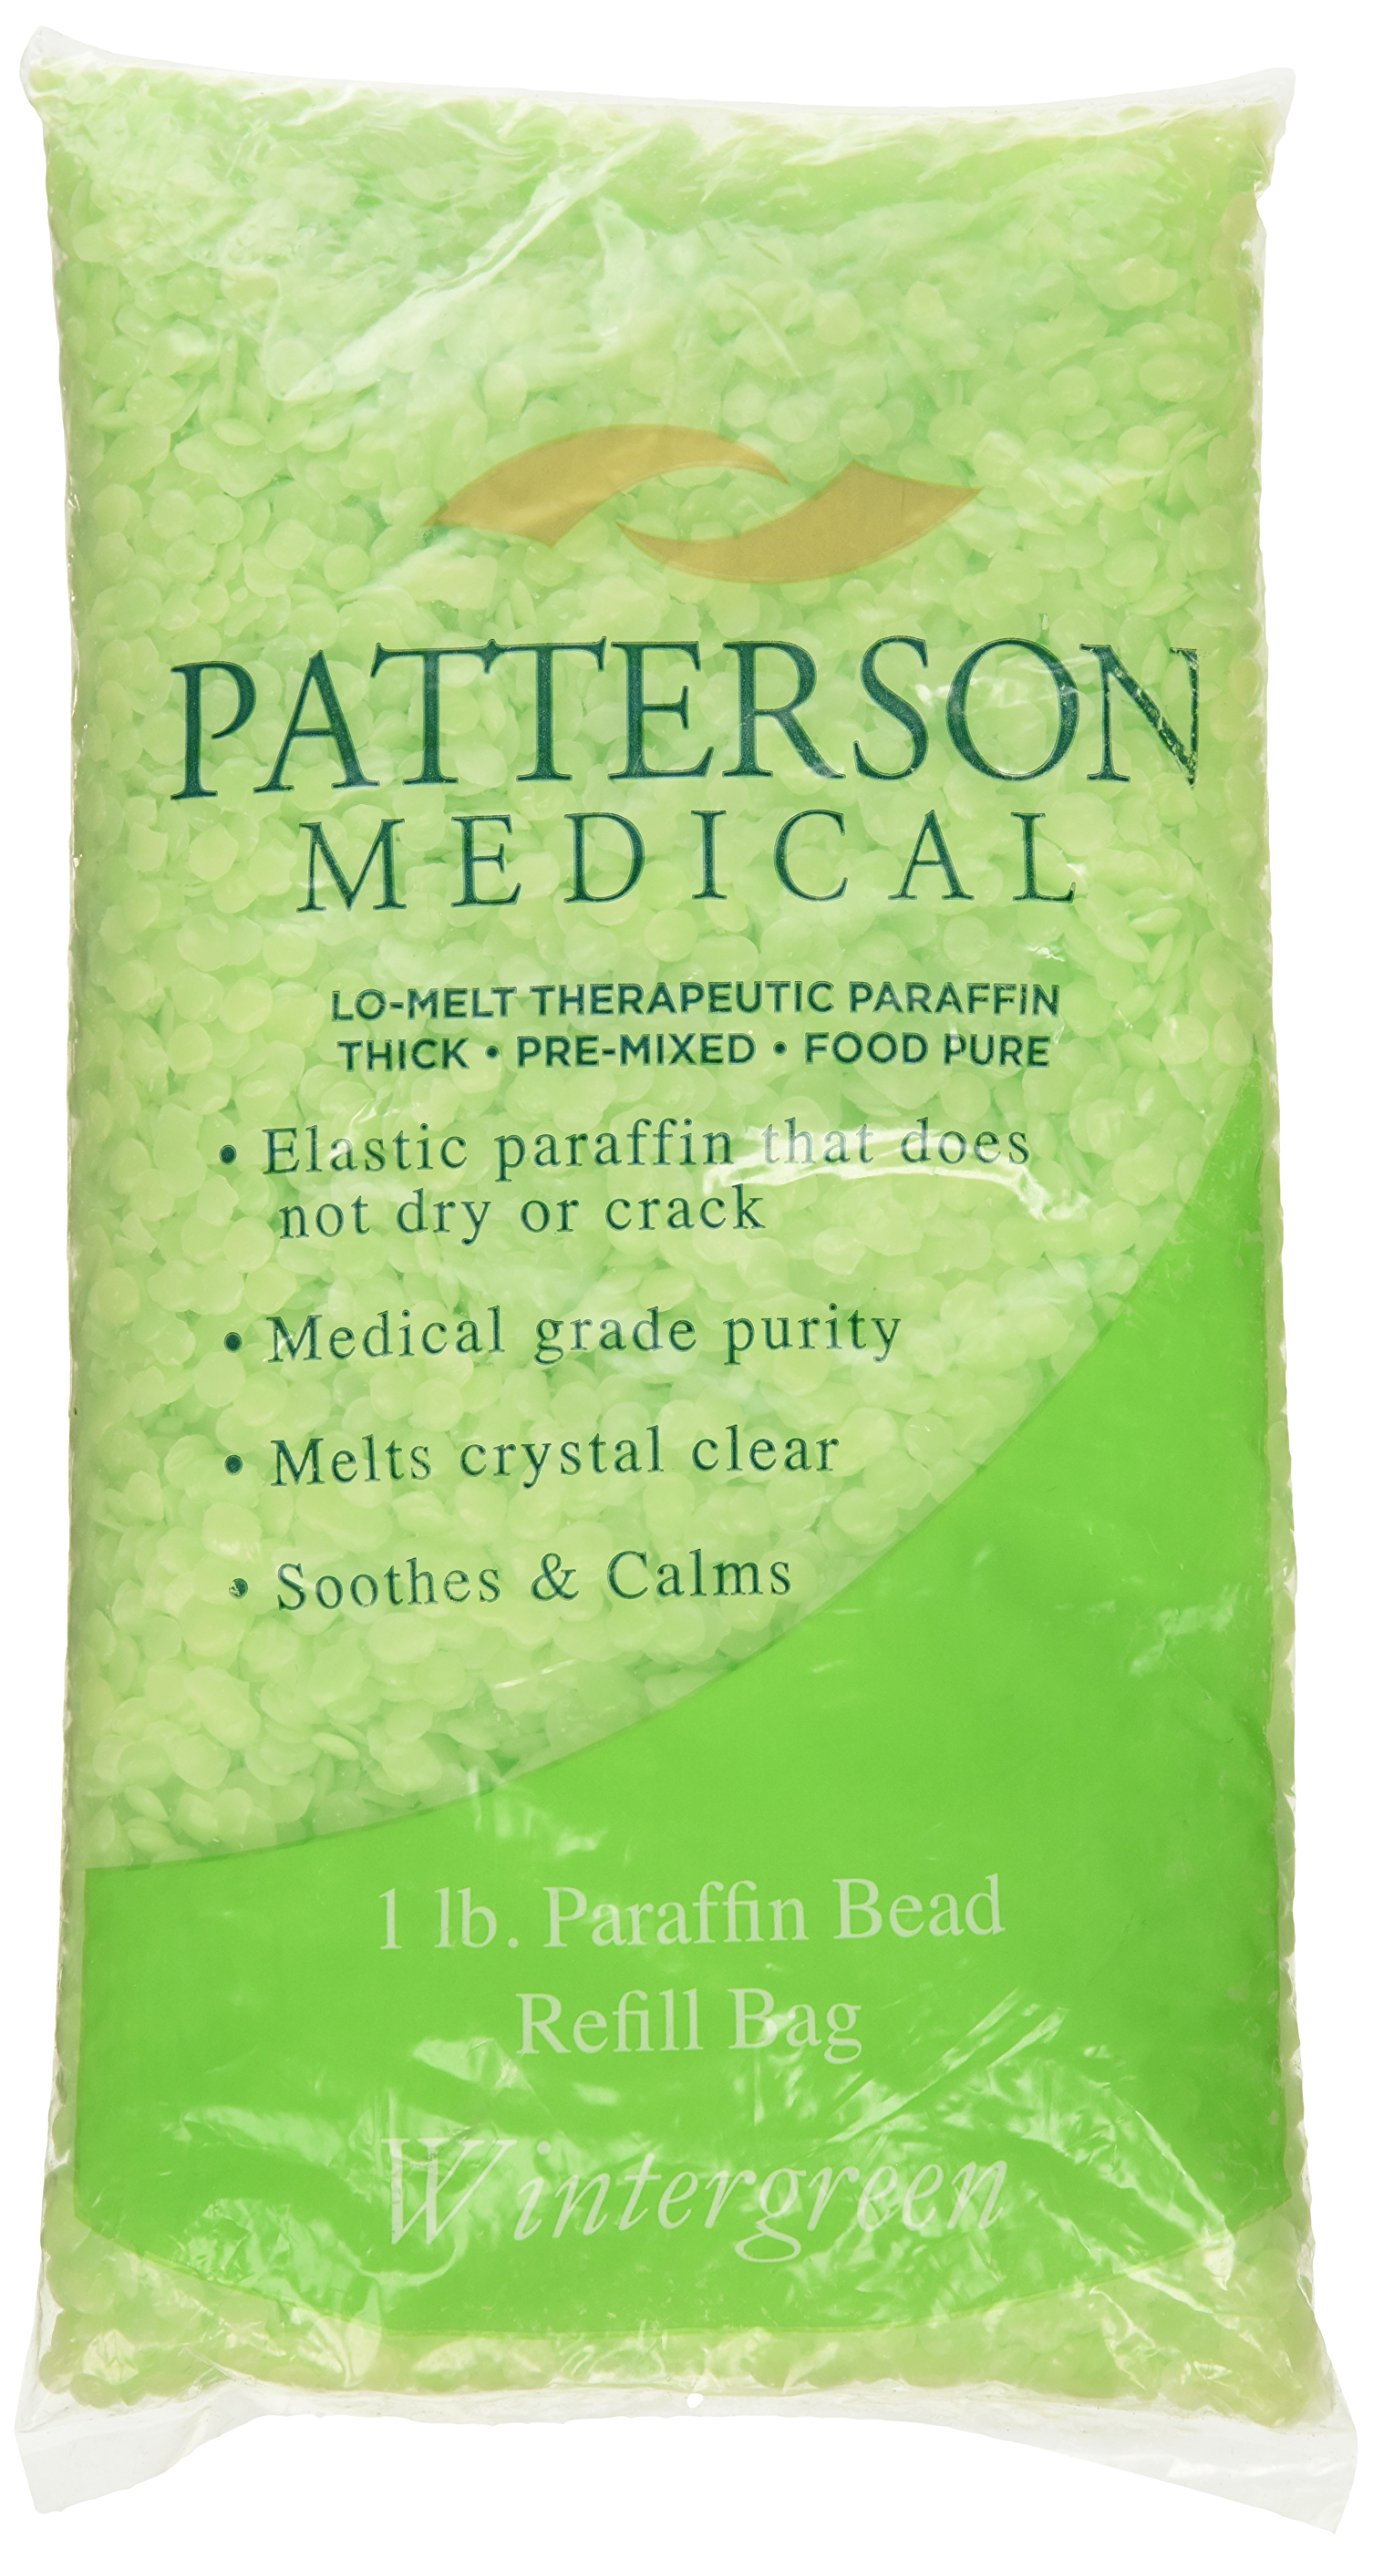 Performa Paraffin Wax Refills, Wintergreen Scented Beads, Case of 6, 1 Pound Low-Melt Beads with Aromatherpy Oil Scent, Medical Grade Wax for Paraffin Bath, Heated Wax for Hands, Feet, Arthritis